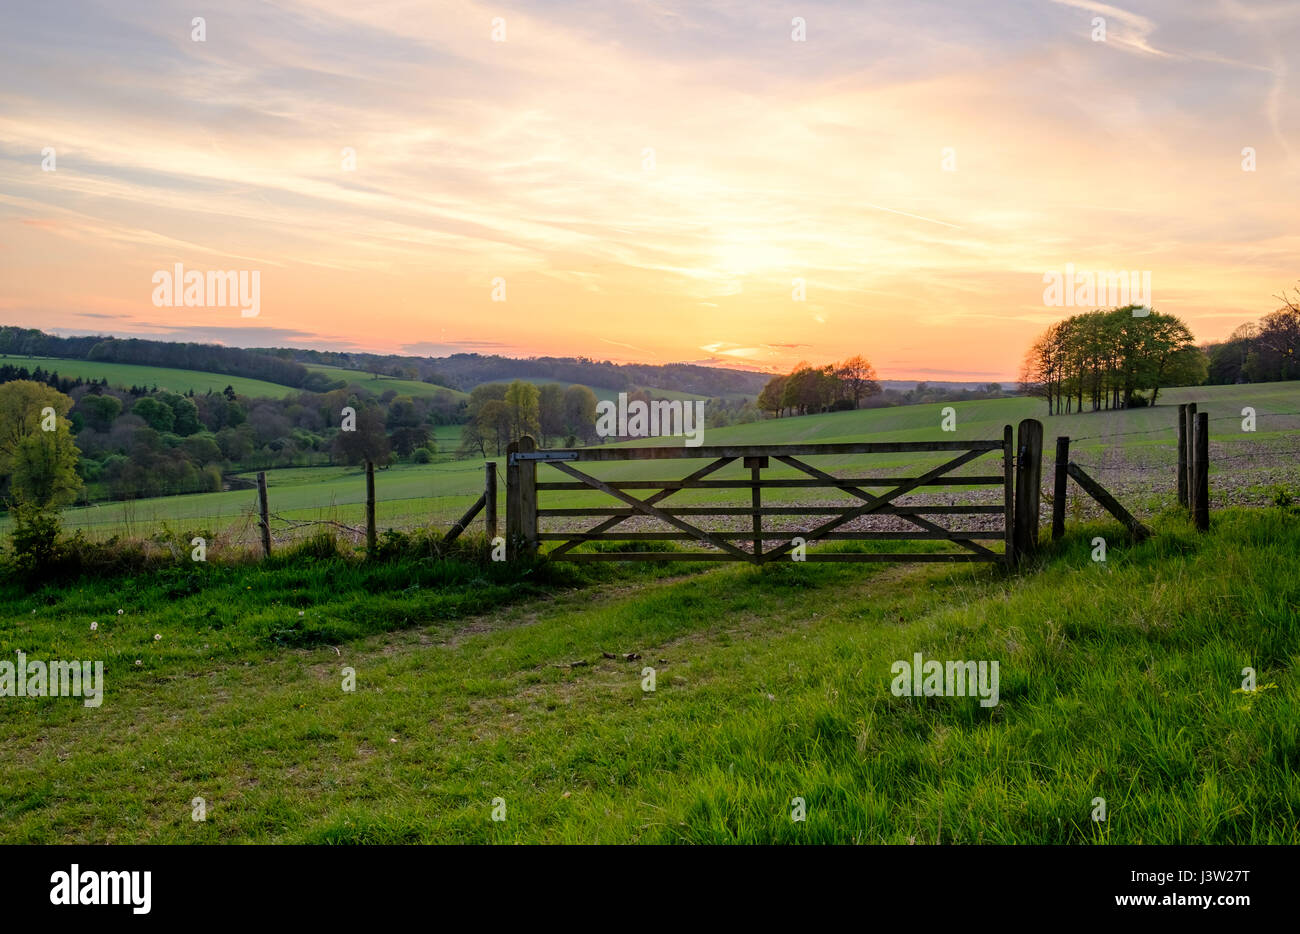 Countryside sunset over field gate - Stock Image